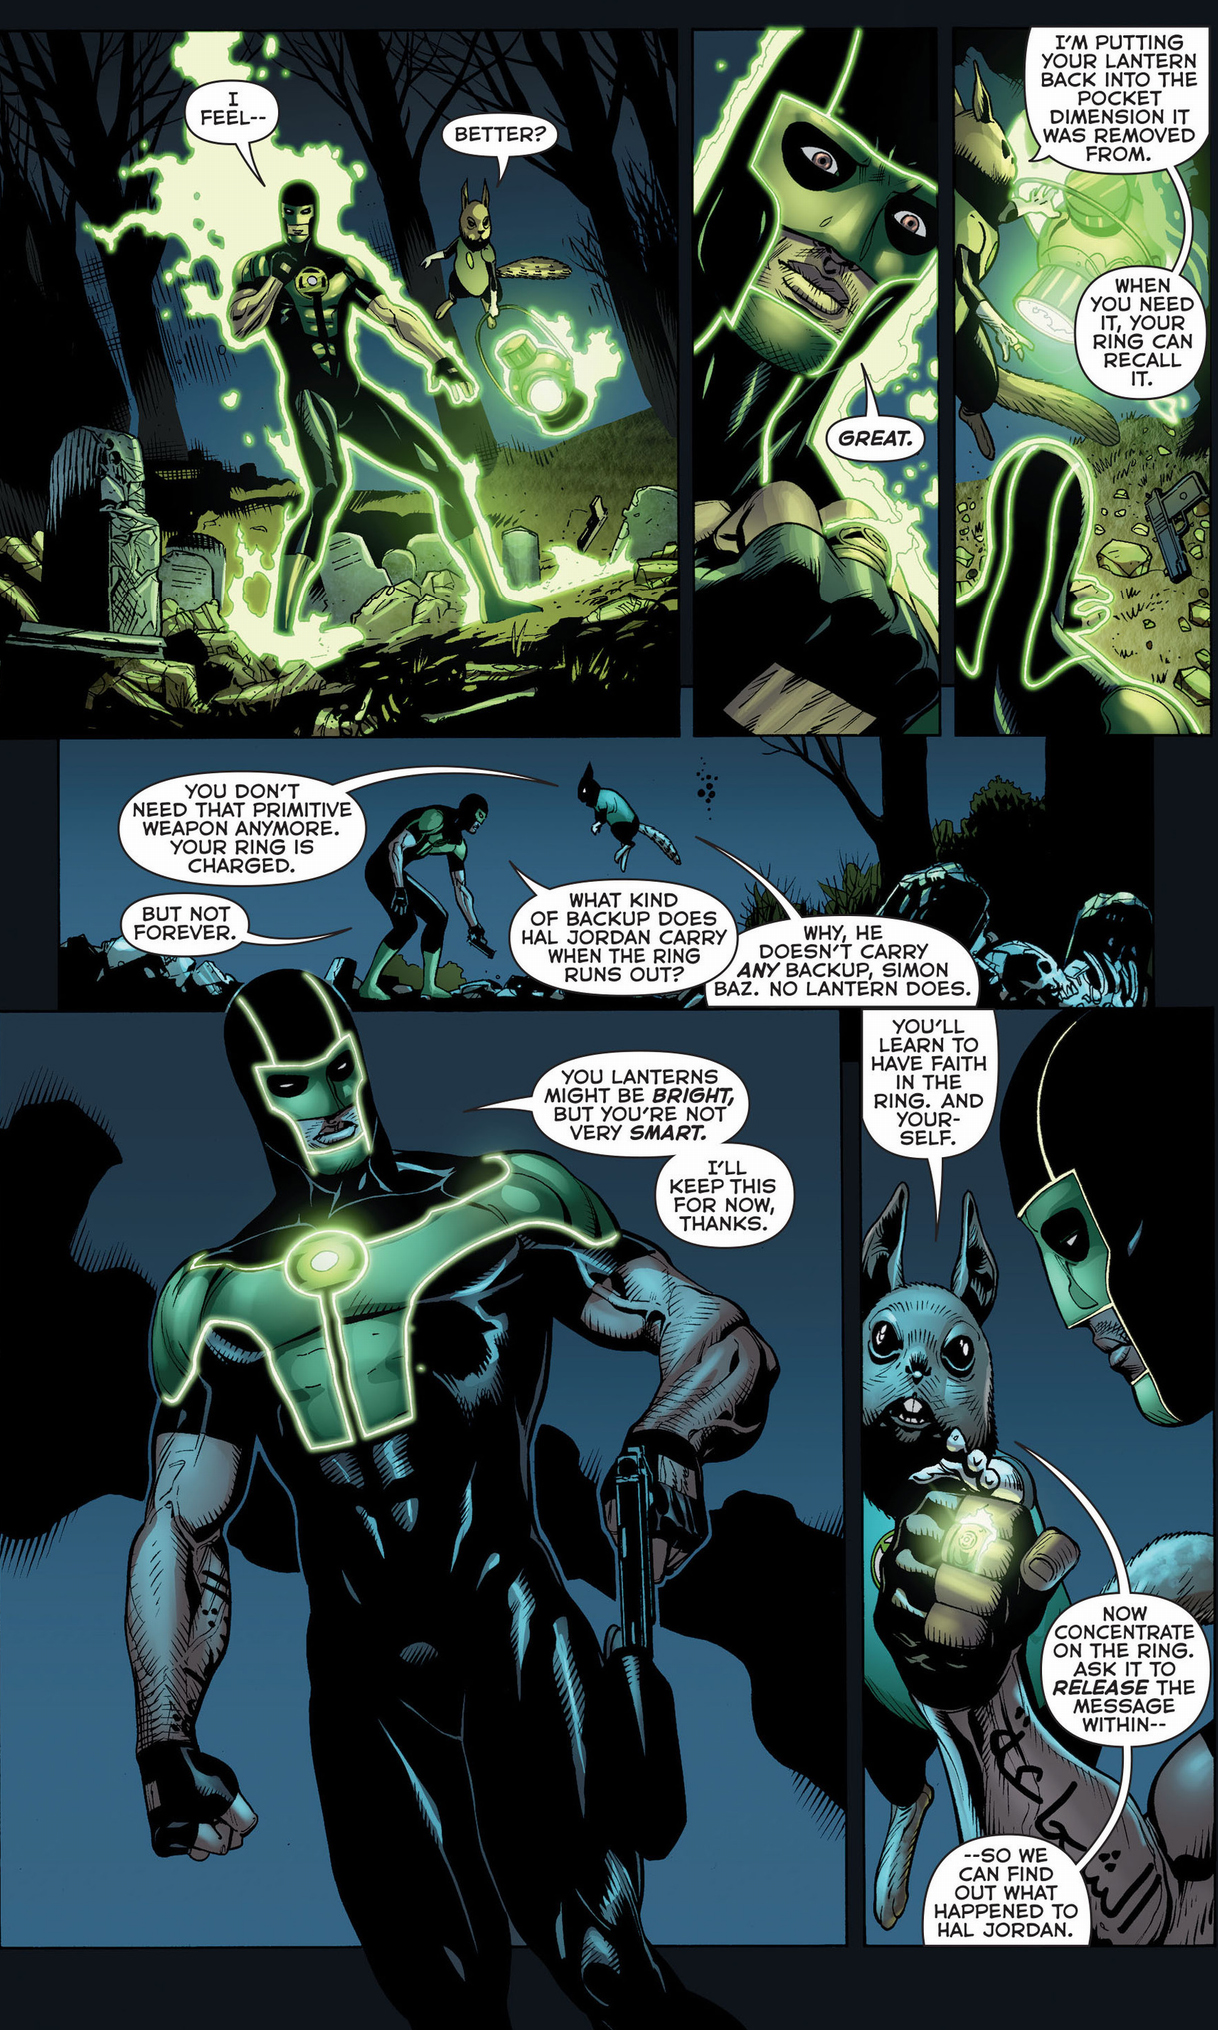 why-green-lantern-simon-baz-carries-a-gun